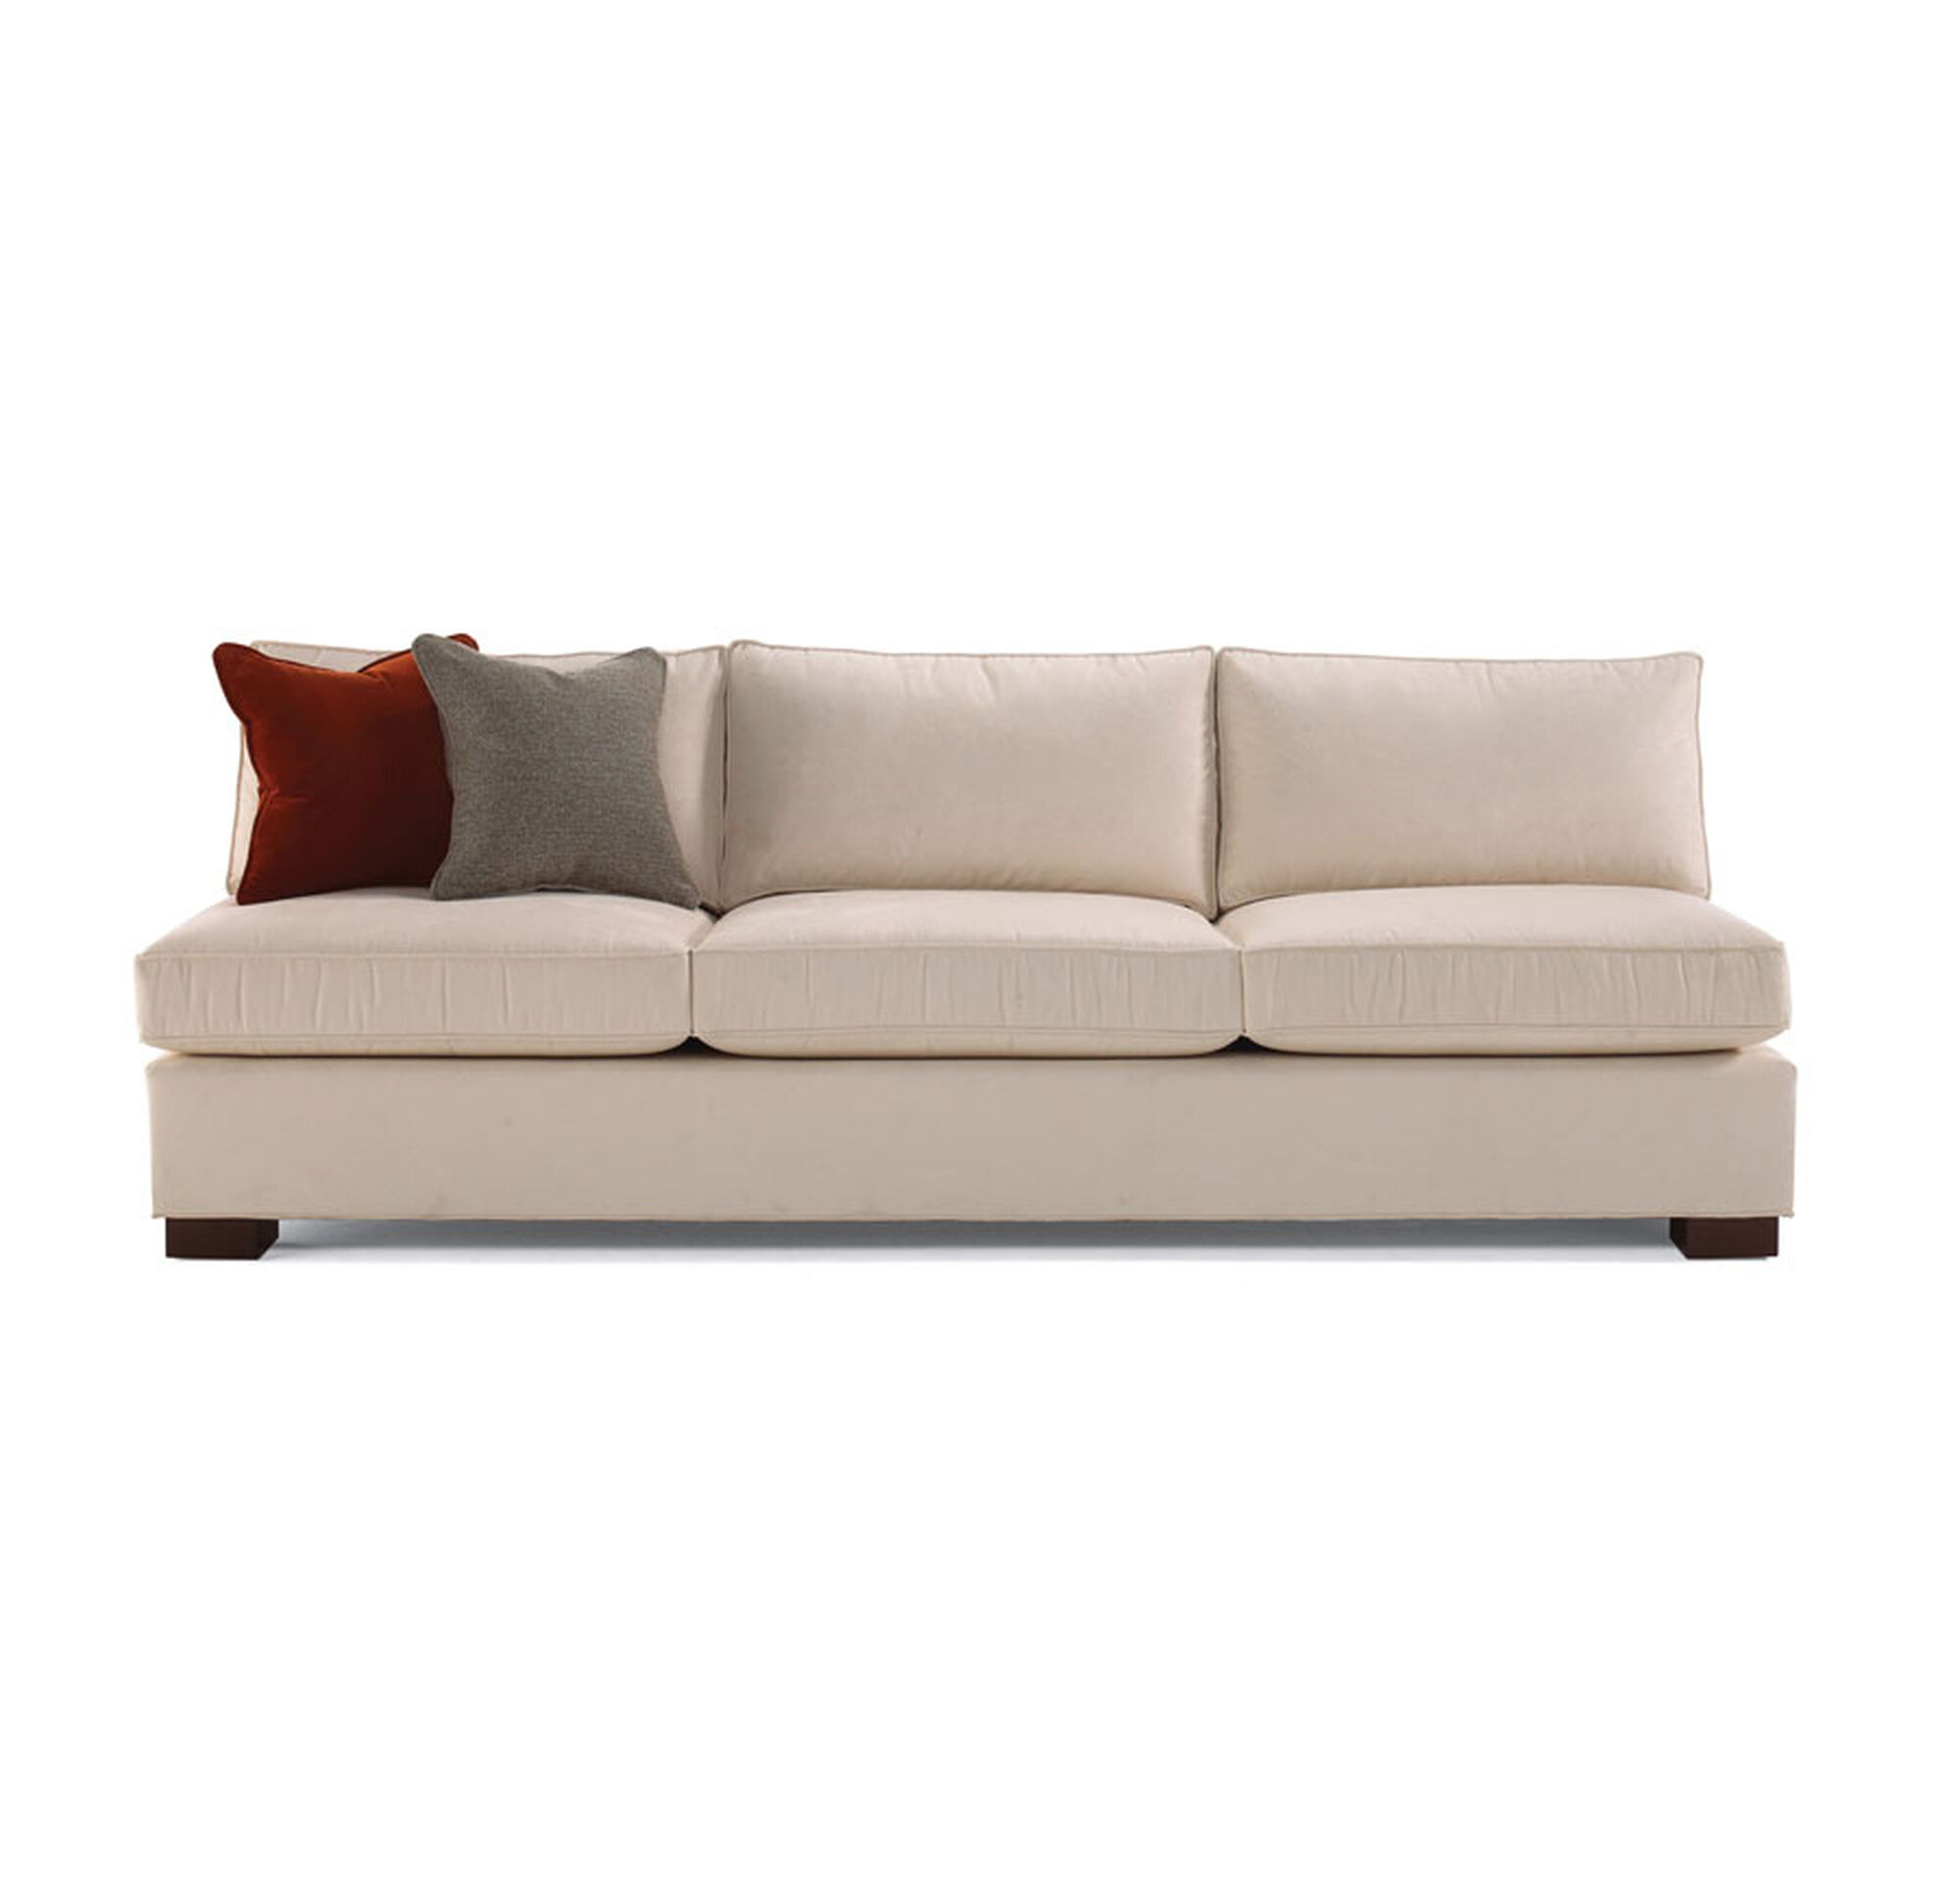 sofa collection armless for associates pearsall a attached by couch craft unique tables pin adrian with from